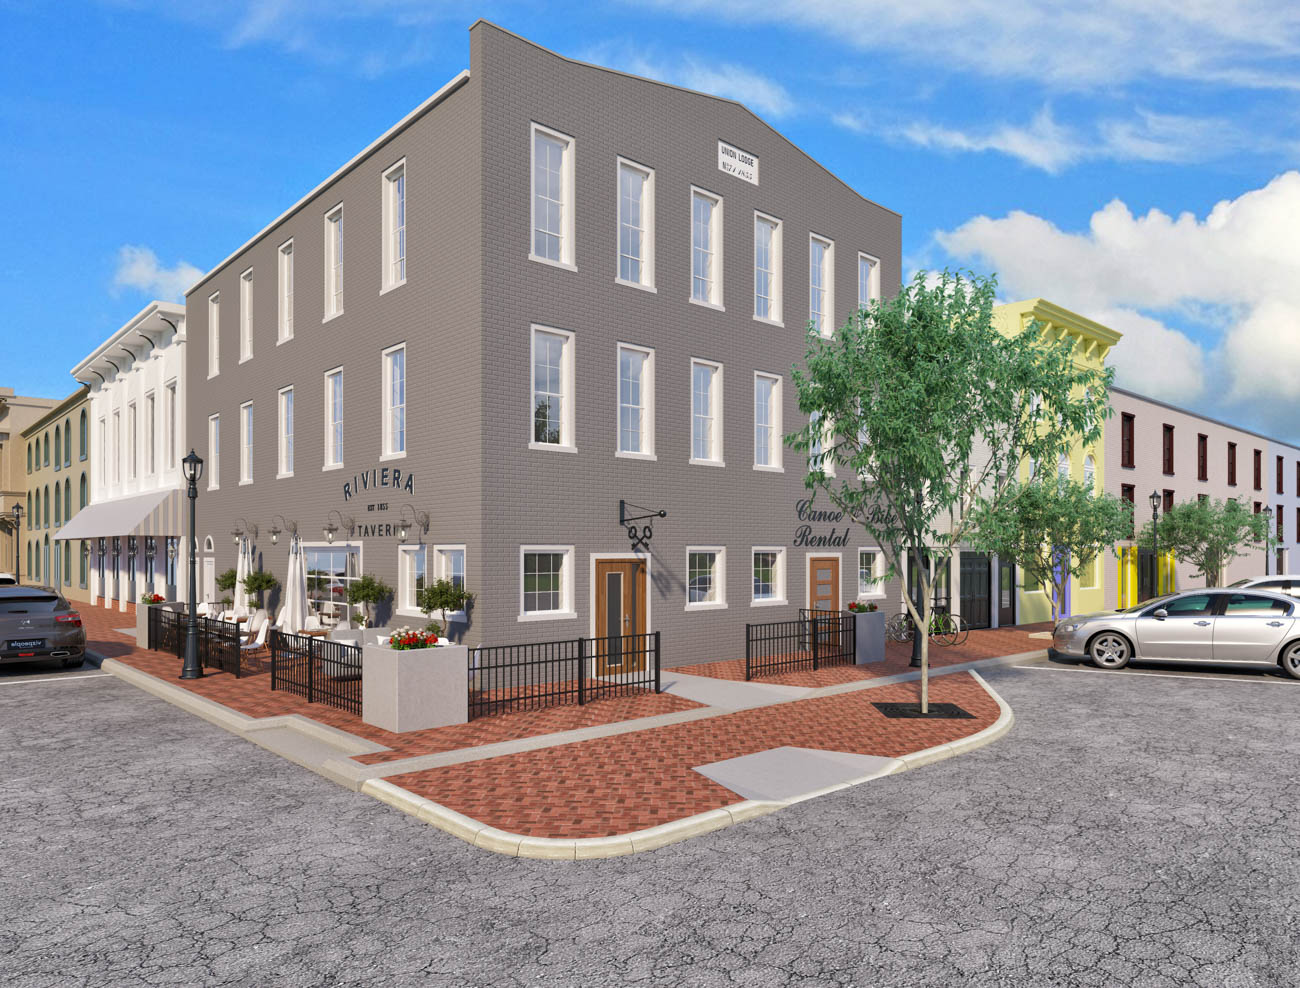 Officials in Ripley, Ohio are considering a proposed historic, mixed-use redevelopment. Oval Room Group provided renderings for a possible tavern and canoe rental shop on this corner lot. / Image courtesy of Oval Room Group // Published: 9.17.19